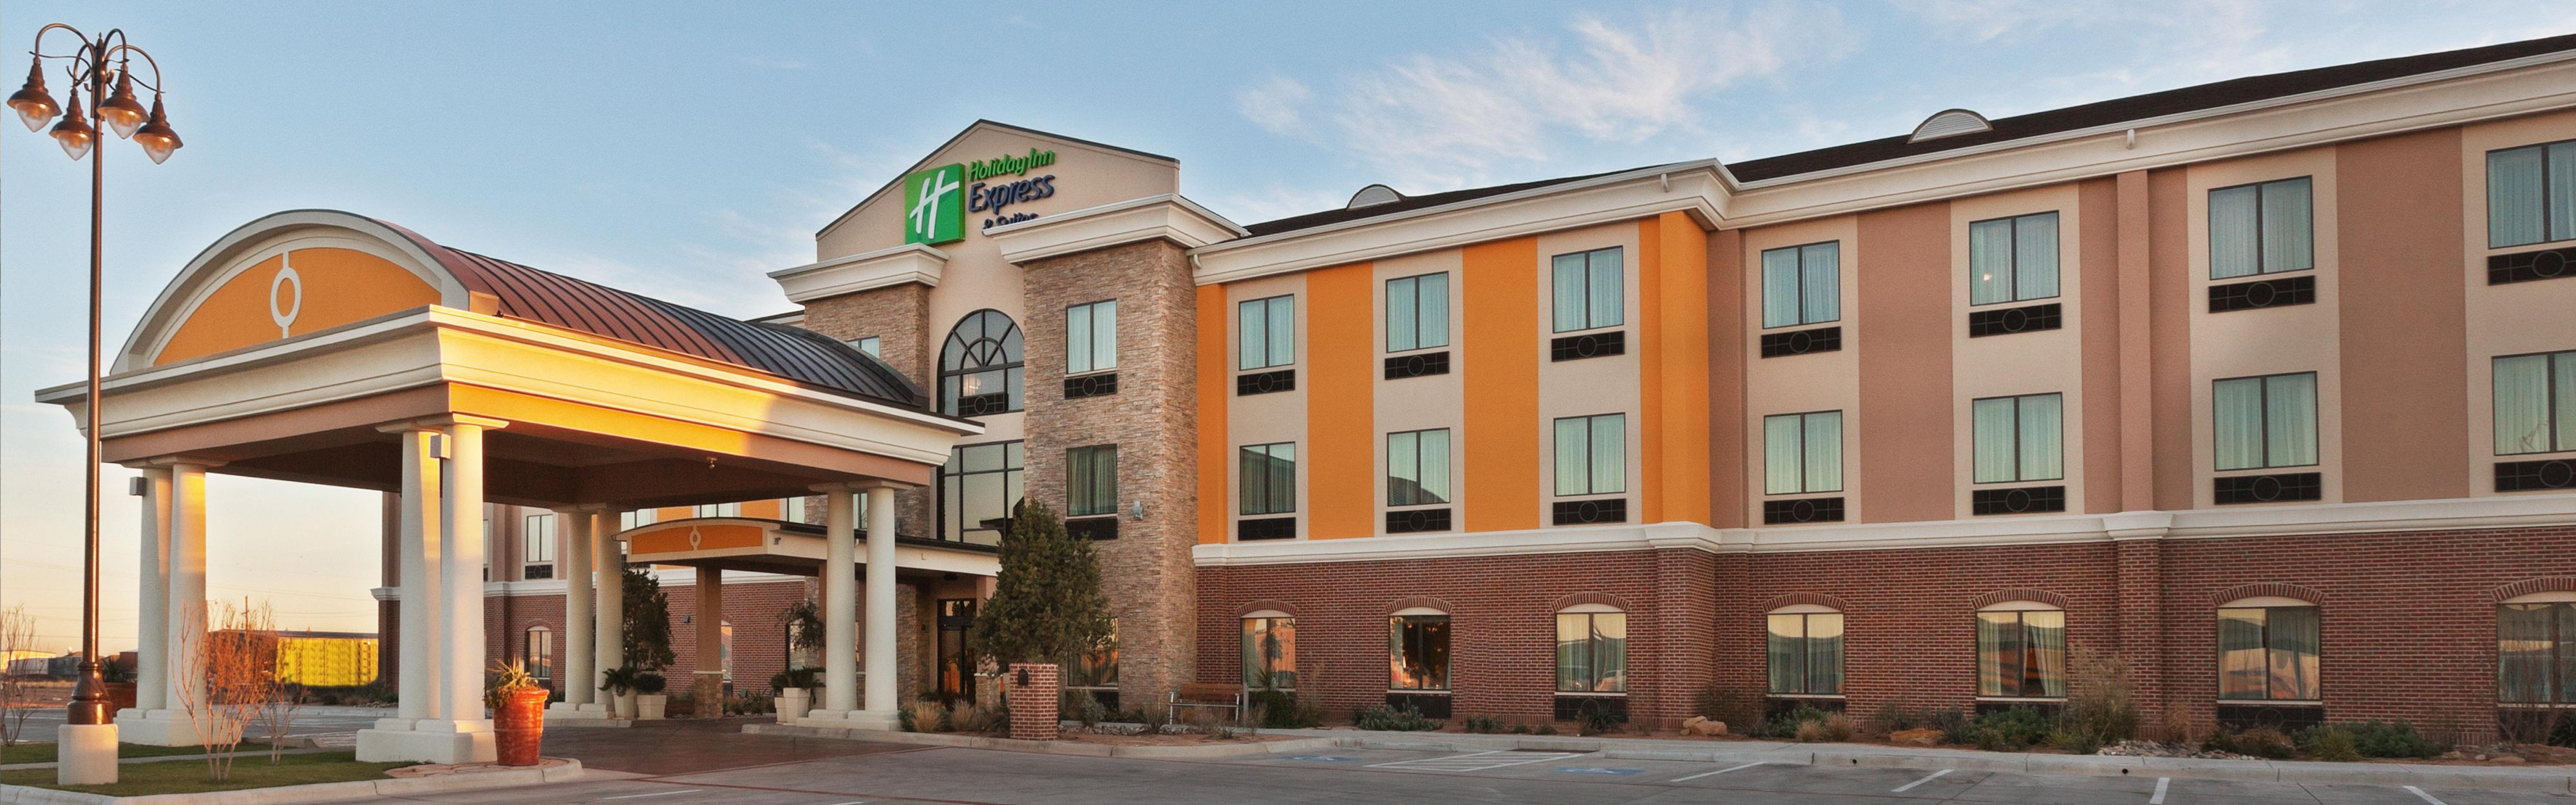 Holiday Inn Express Hotel And Suites Lubbock Texas